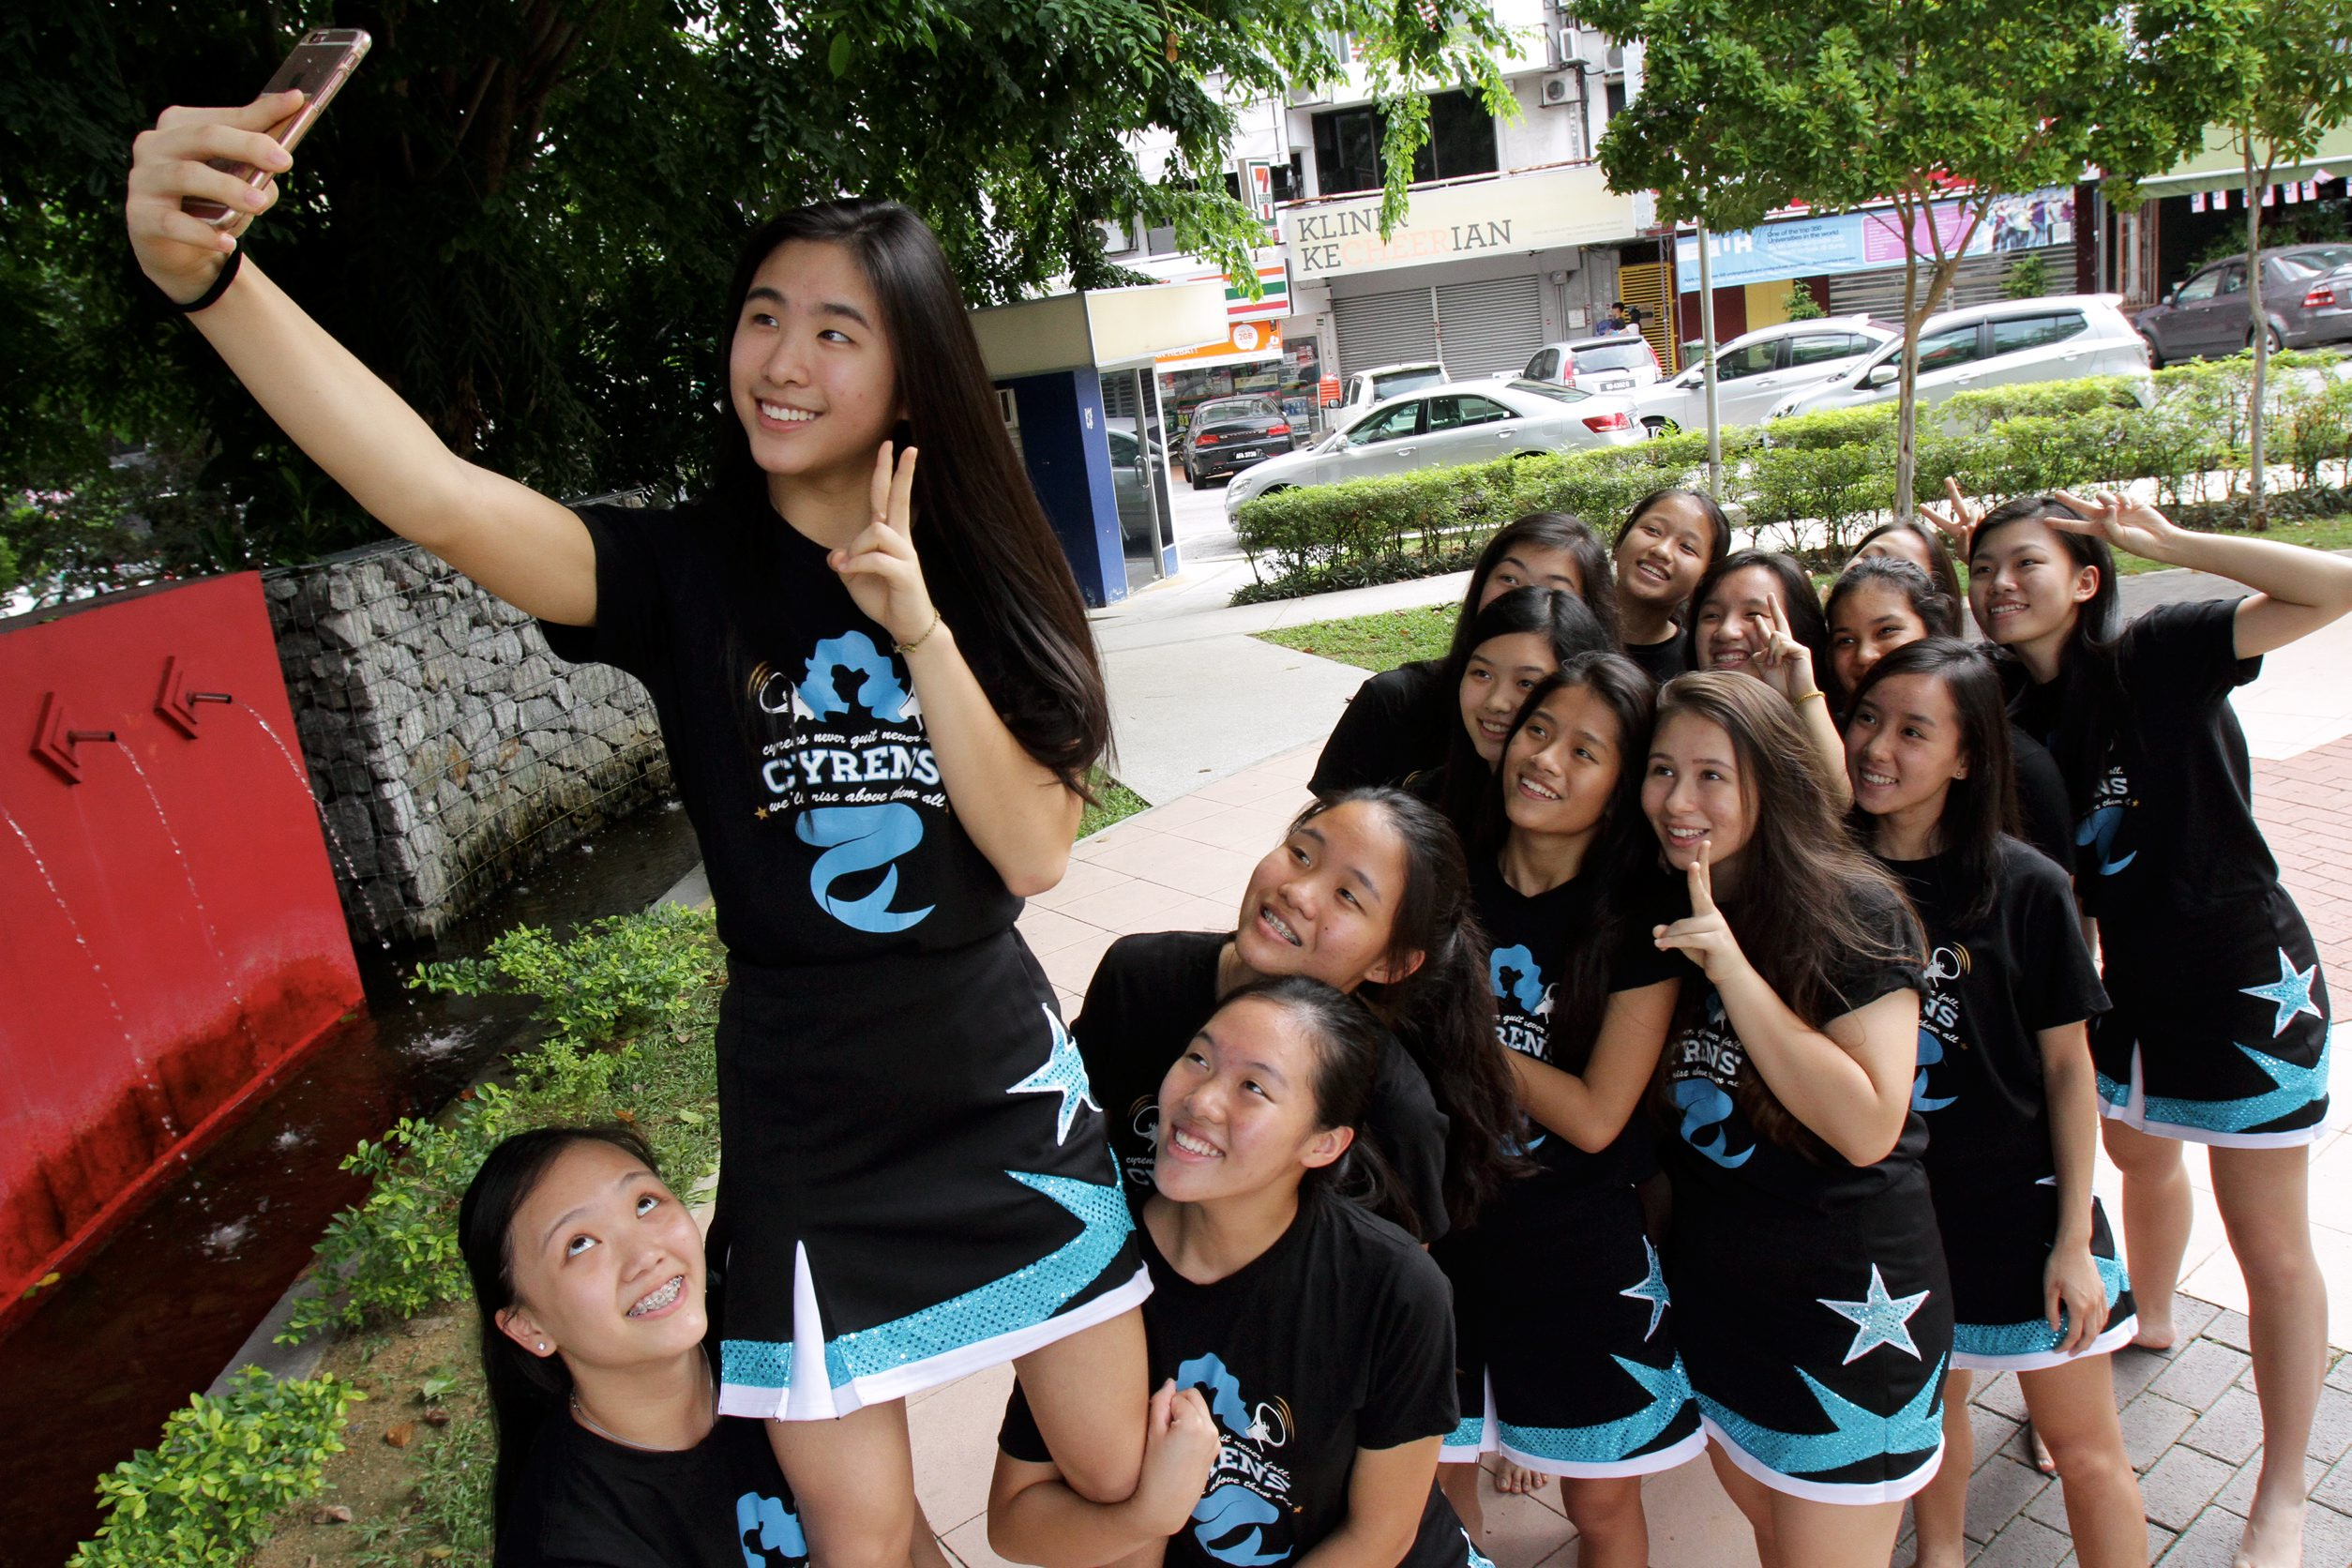 Yang(2nd from left) taking a selfie ala-cheerleader with her teammates.